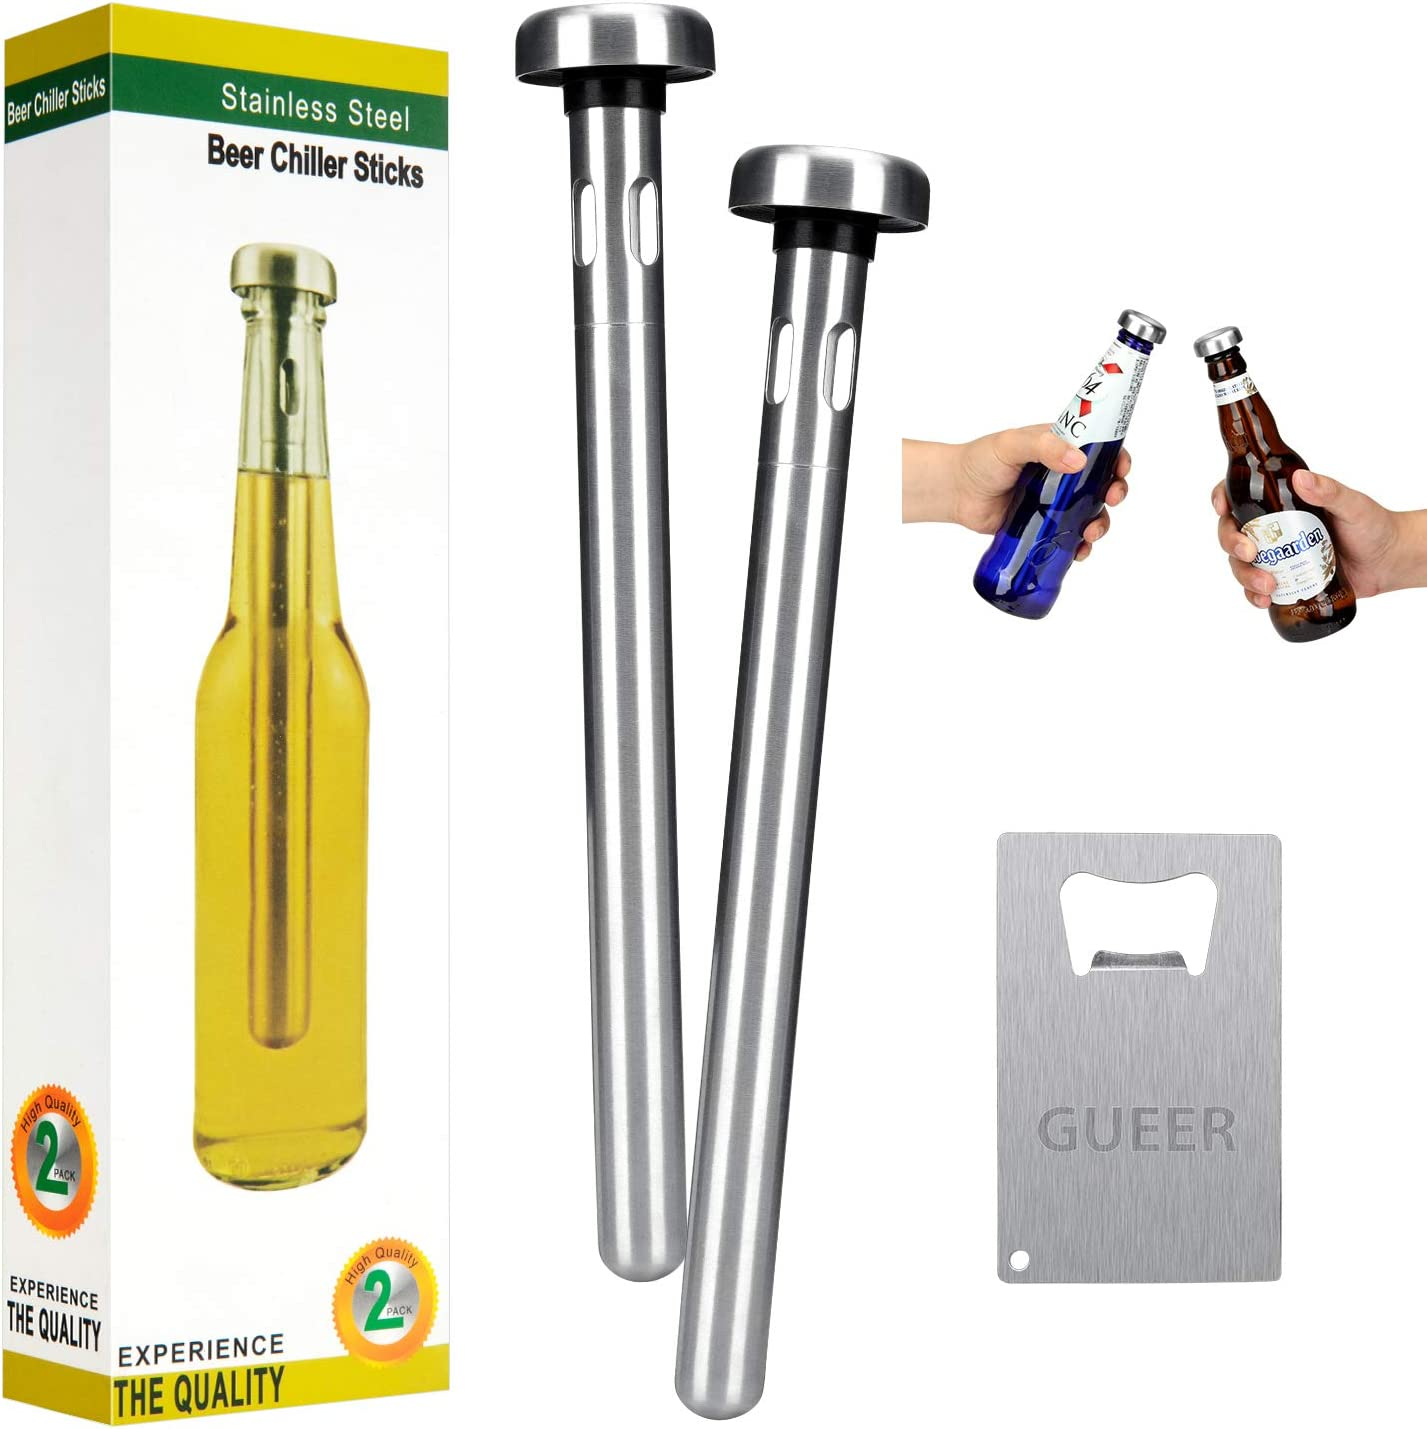 Beer Chiller Stick for Bottles, Premium Stainless Steel, Beer Gifts for Men, Unique, Cool, Set of 2, Beer Accessories Keep Bottled Drinks Cold, for Bar, Party, Camping and Family